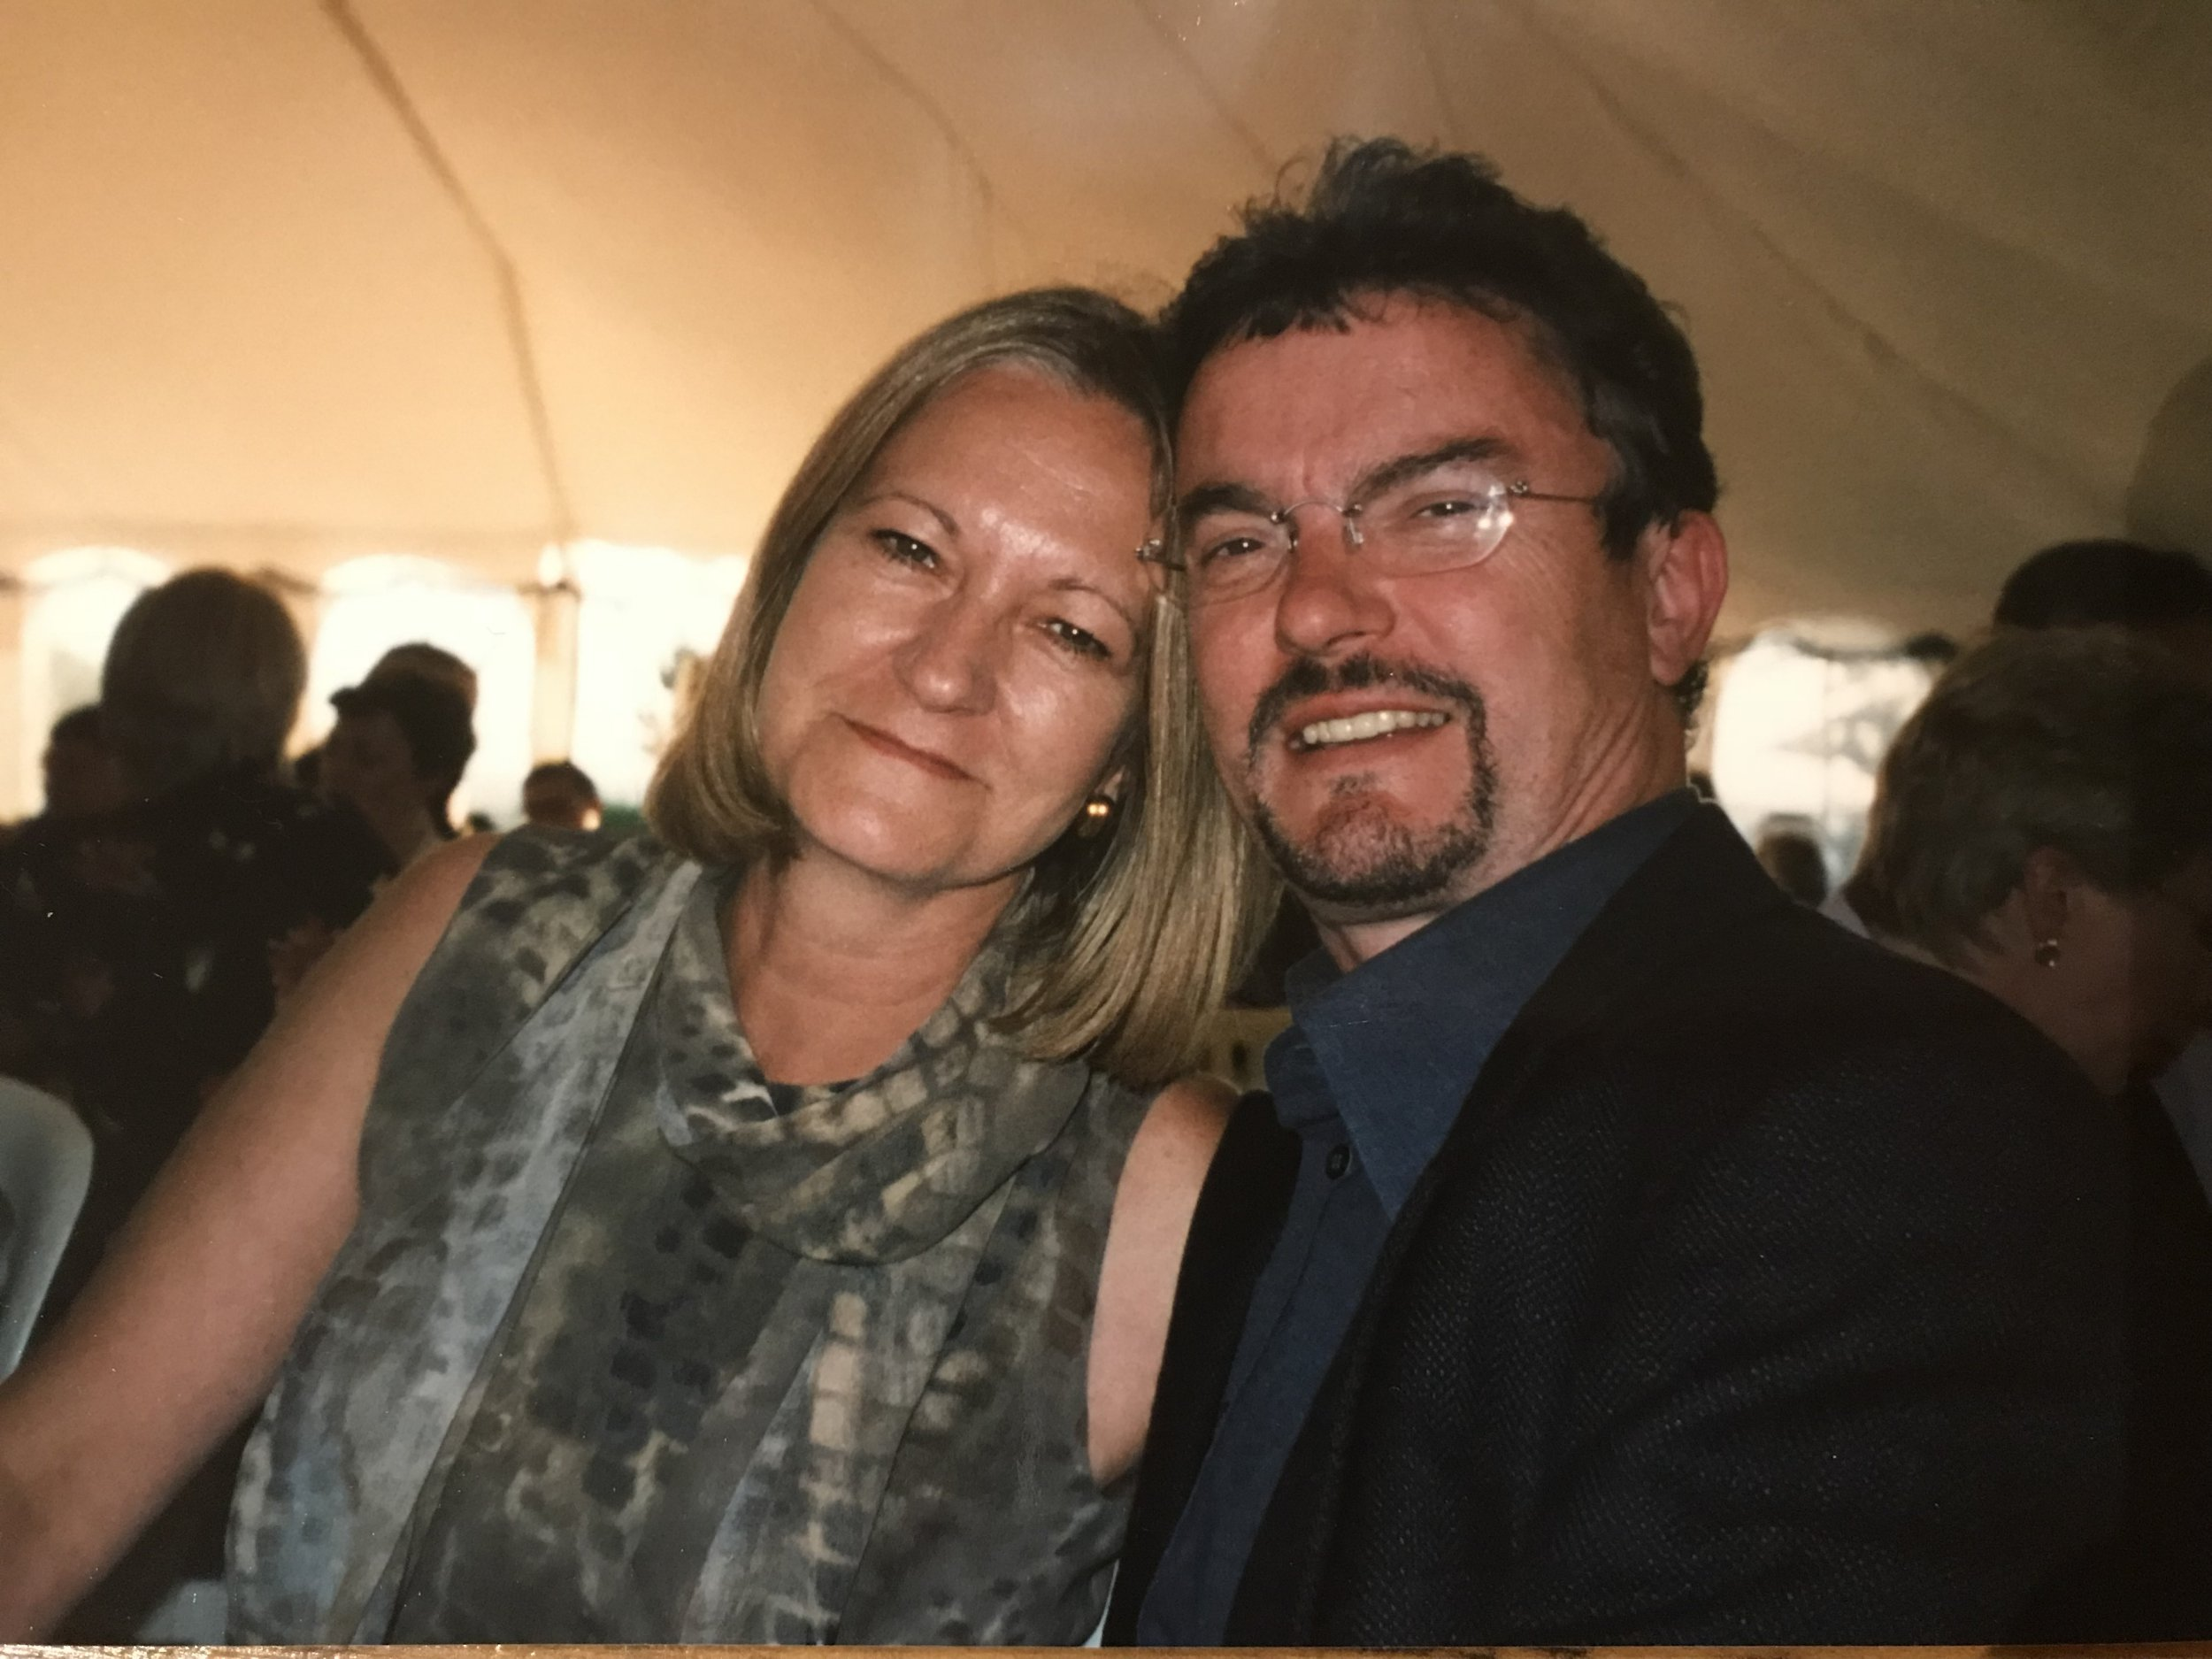 Sally Challen was jailed for murdering her husband Richard with a hammer in 2010. David Challen is helping his mum appeal her murder conviction (Picture: Supplied)